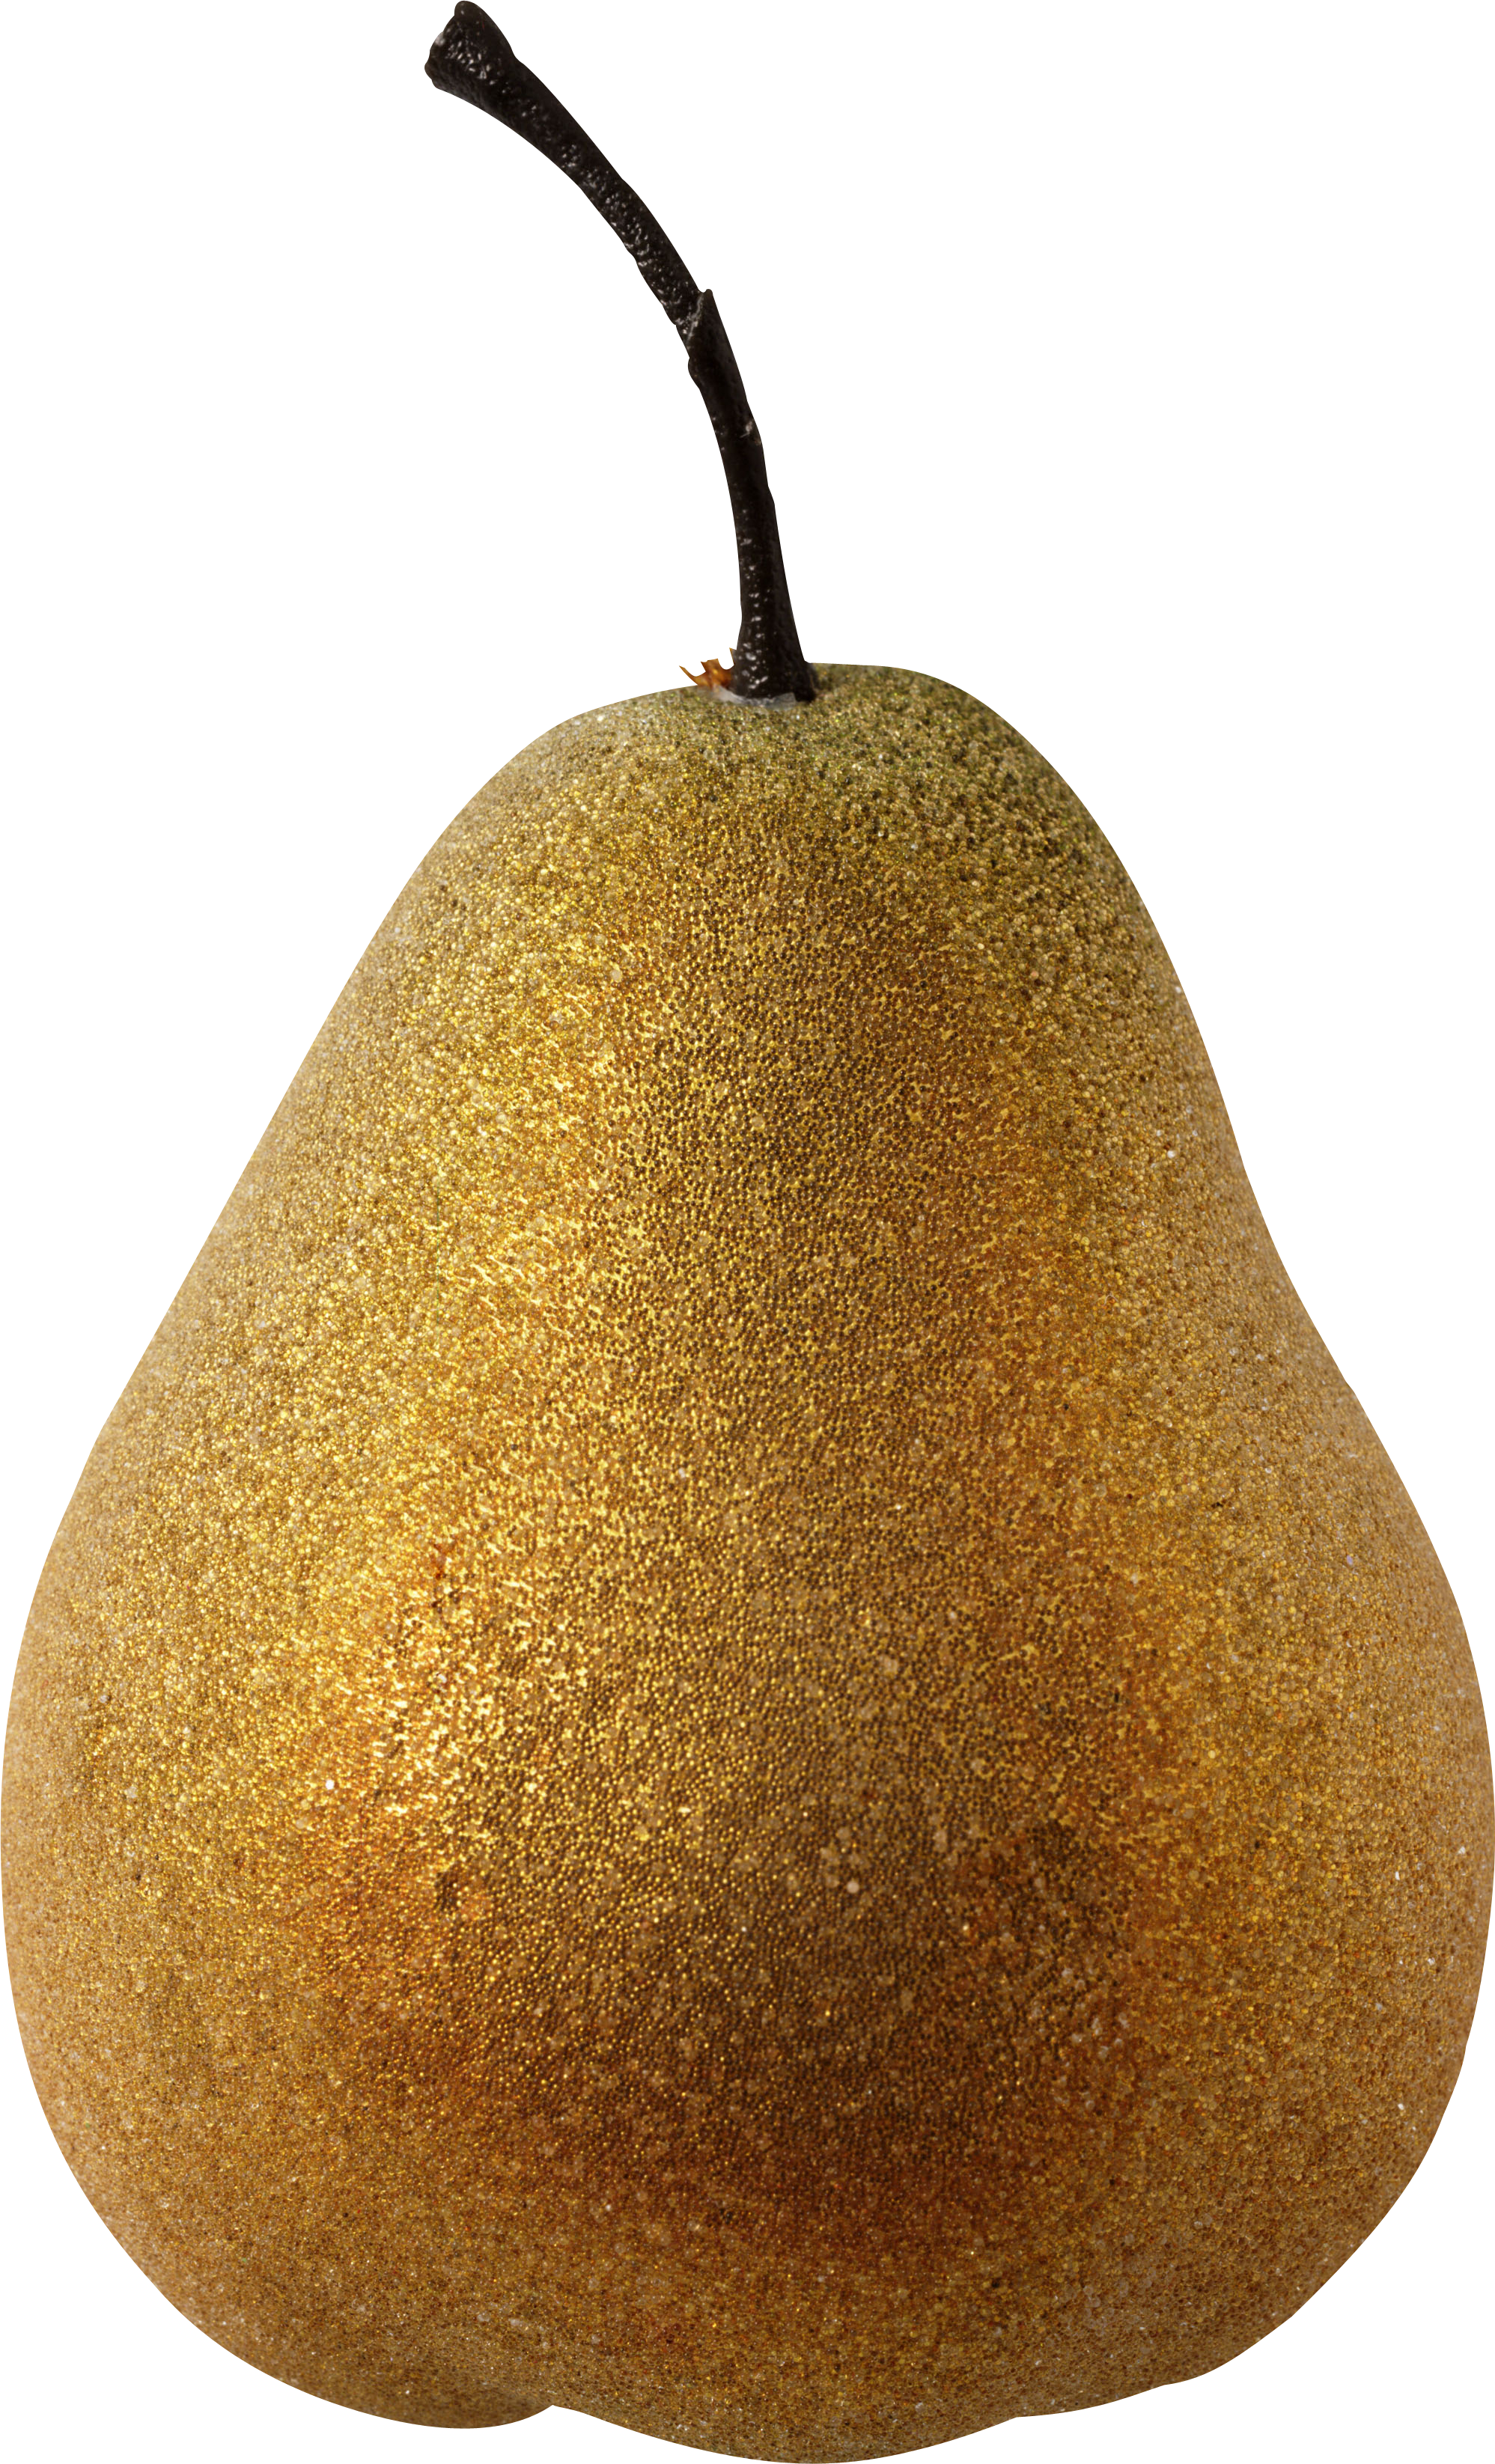 jpg transparent library pear transparent white background #114950424